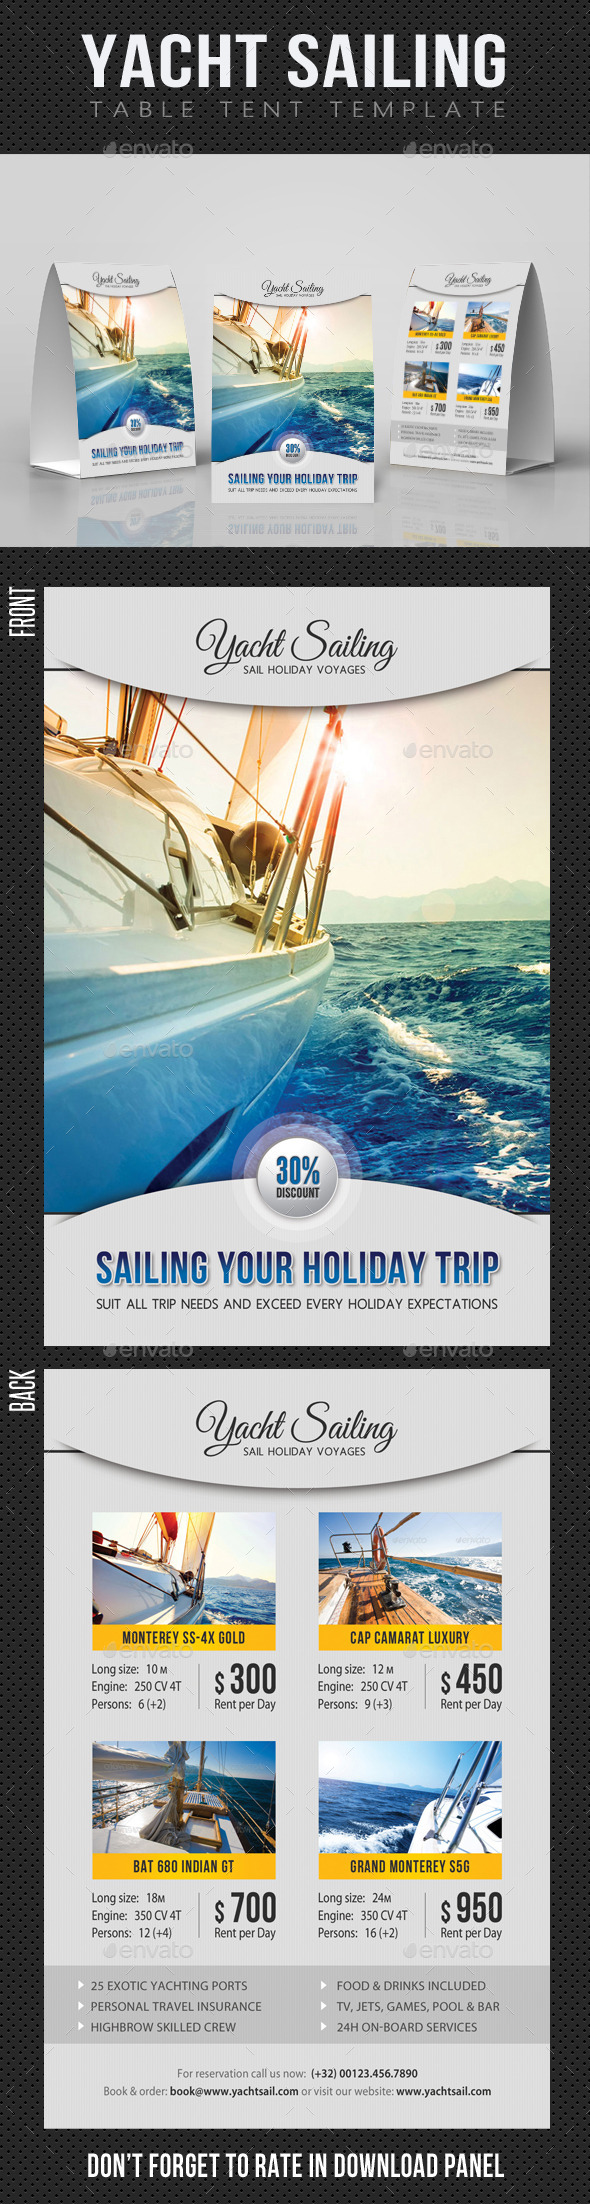 GraphicRiver Sailing Yacht Travel Table Tent V01 11893515